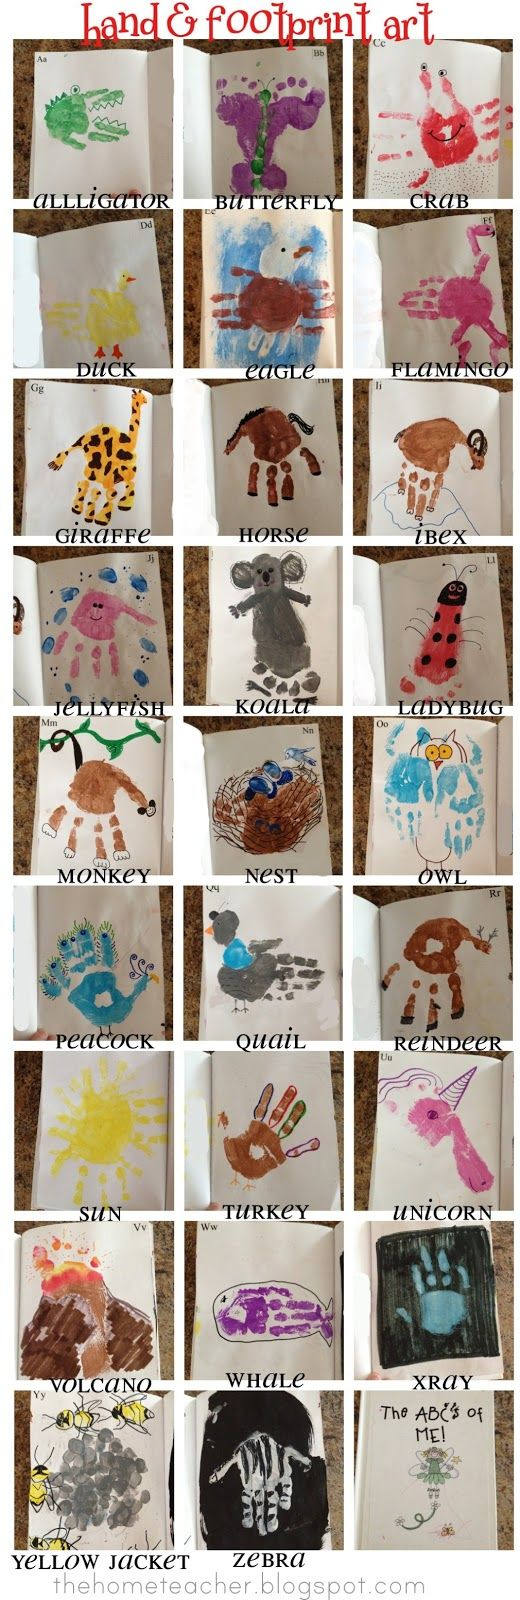 Handprint and footprint animals for every letter of the alphabet - very cute!